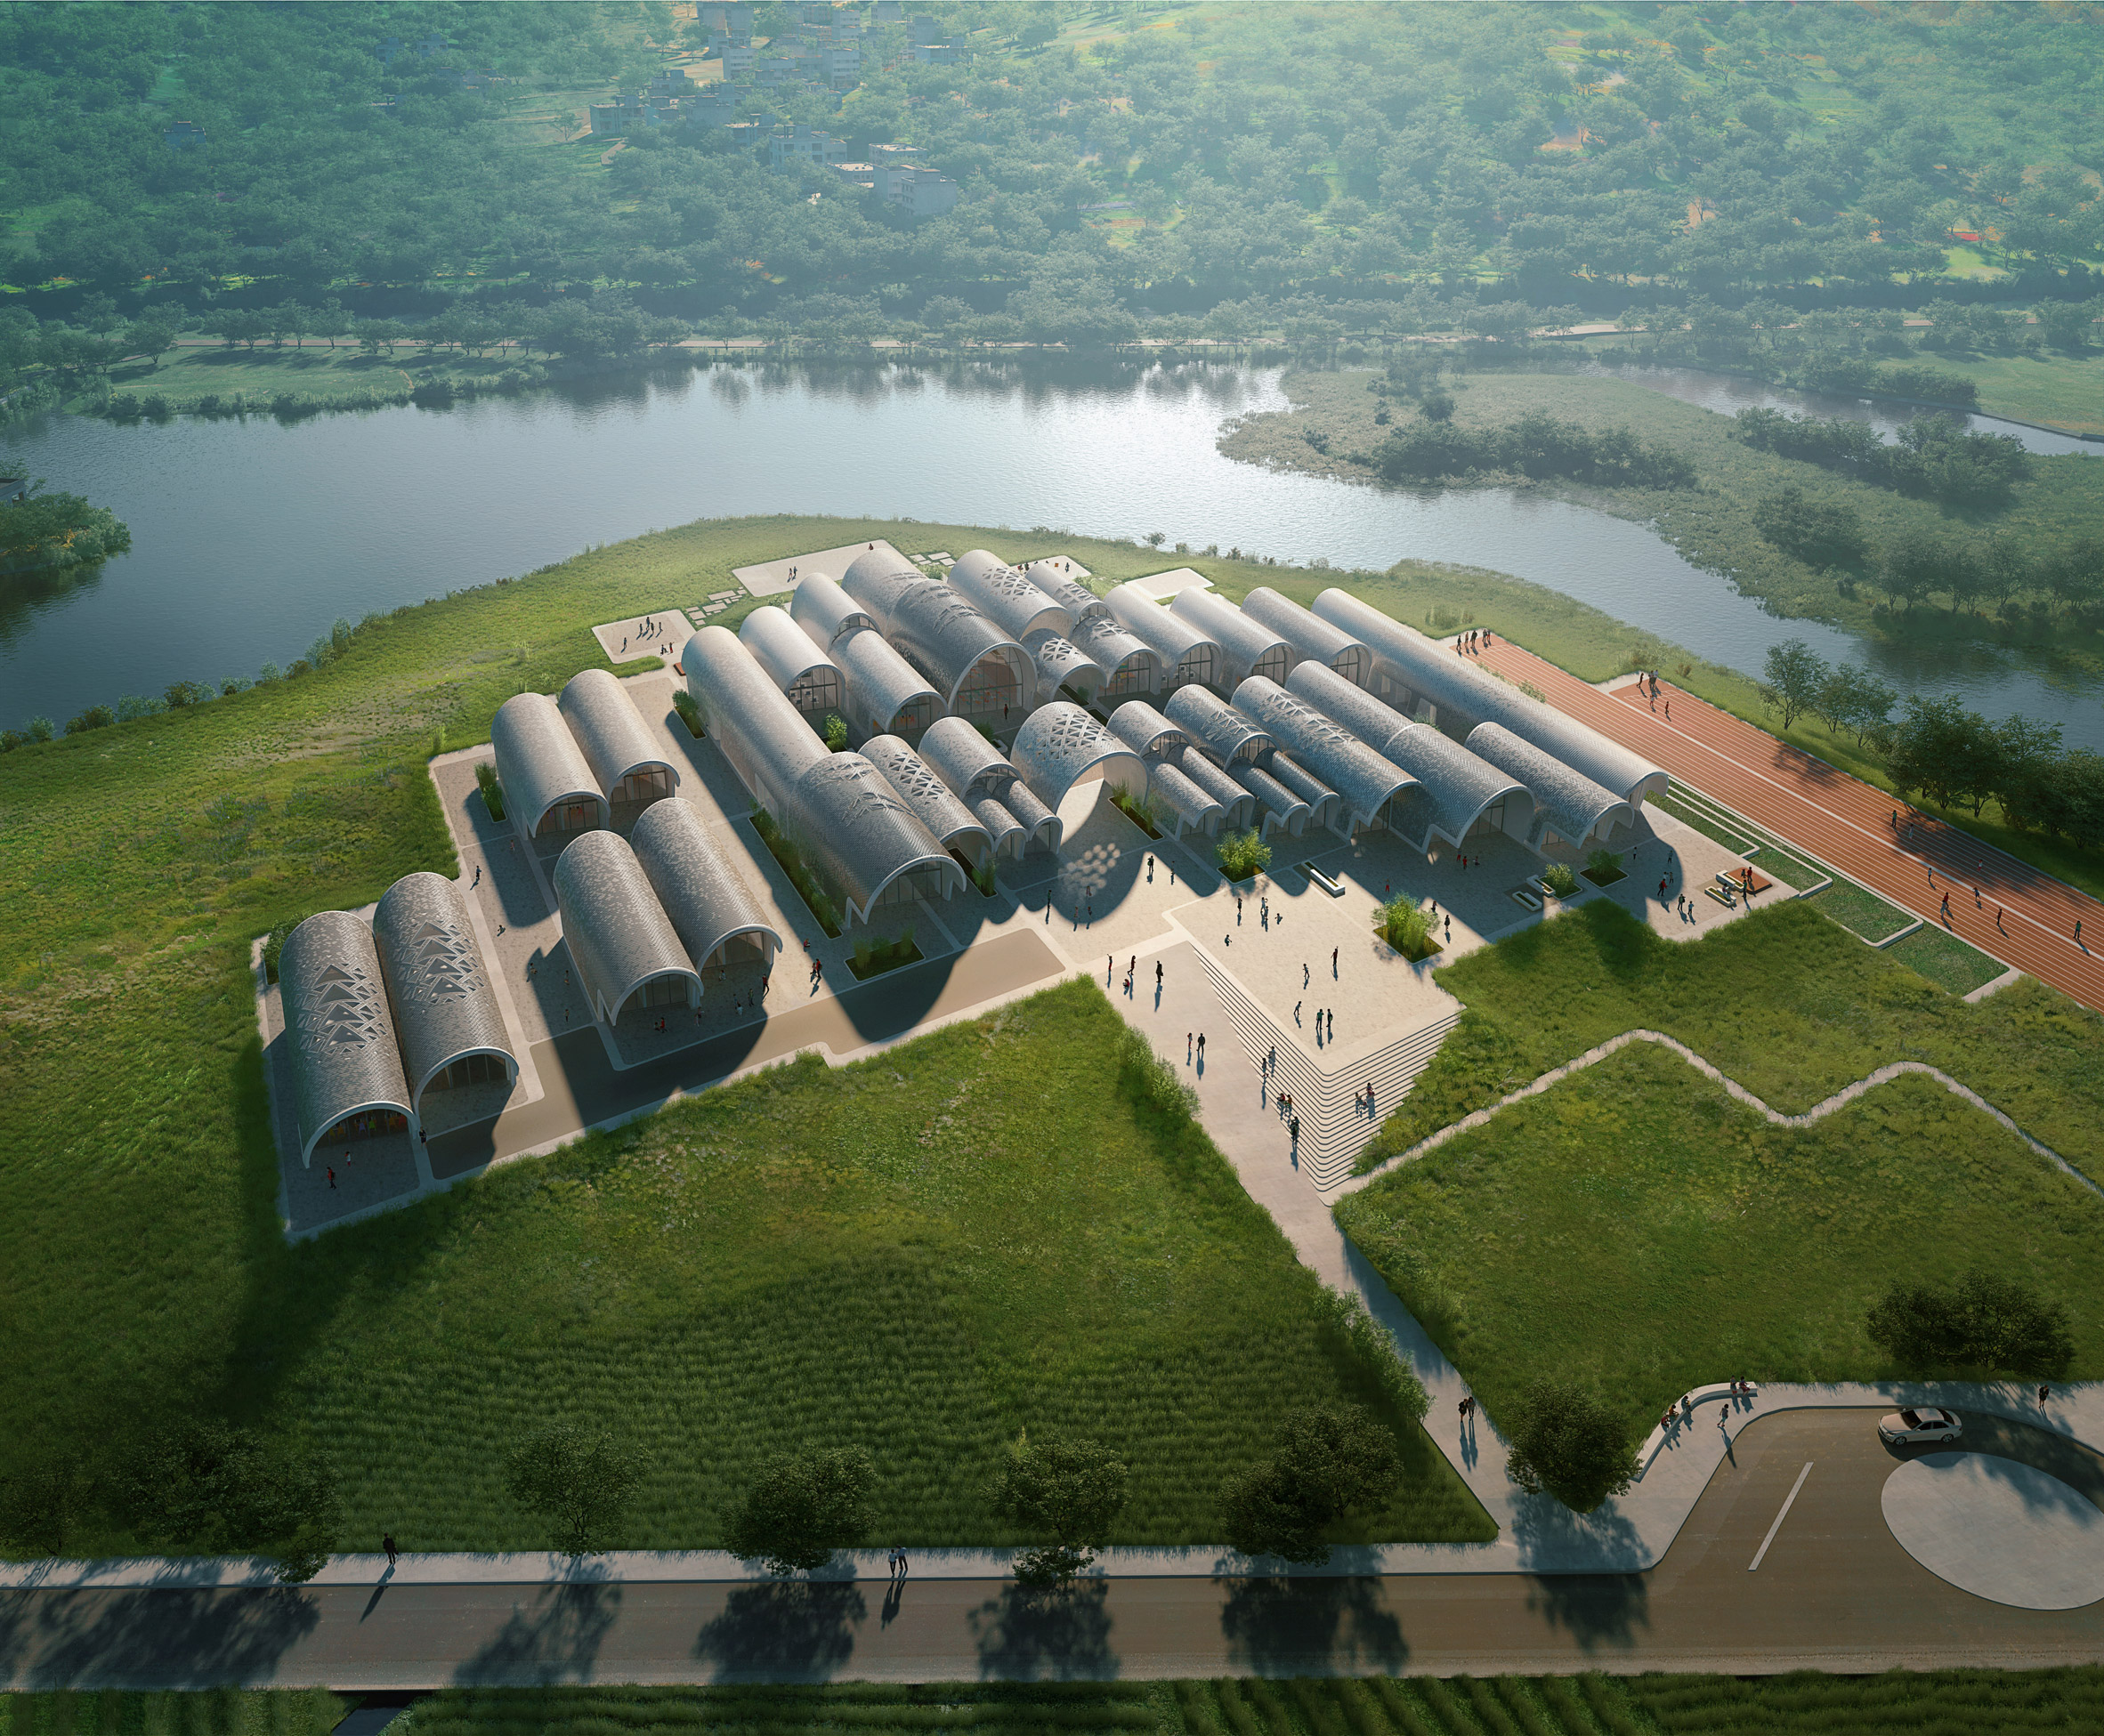 Zaha Hadid Architects will use robots to build barrel-vaulted school in rural China